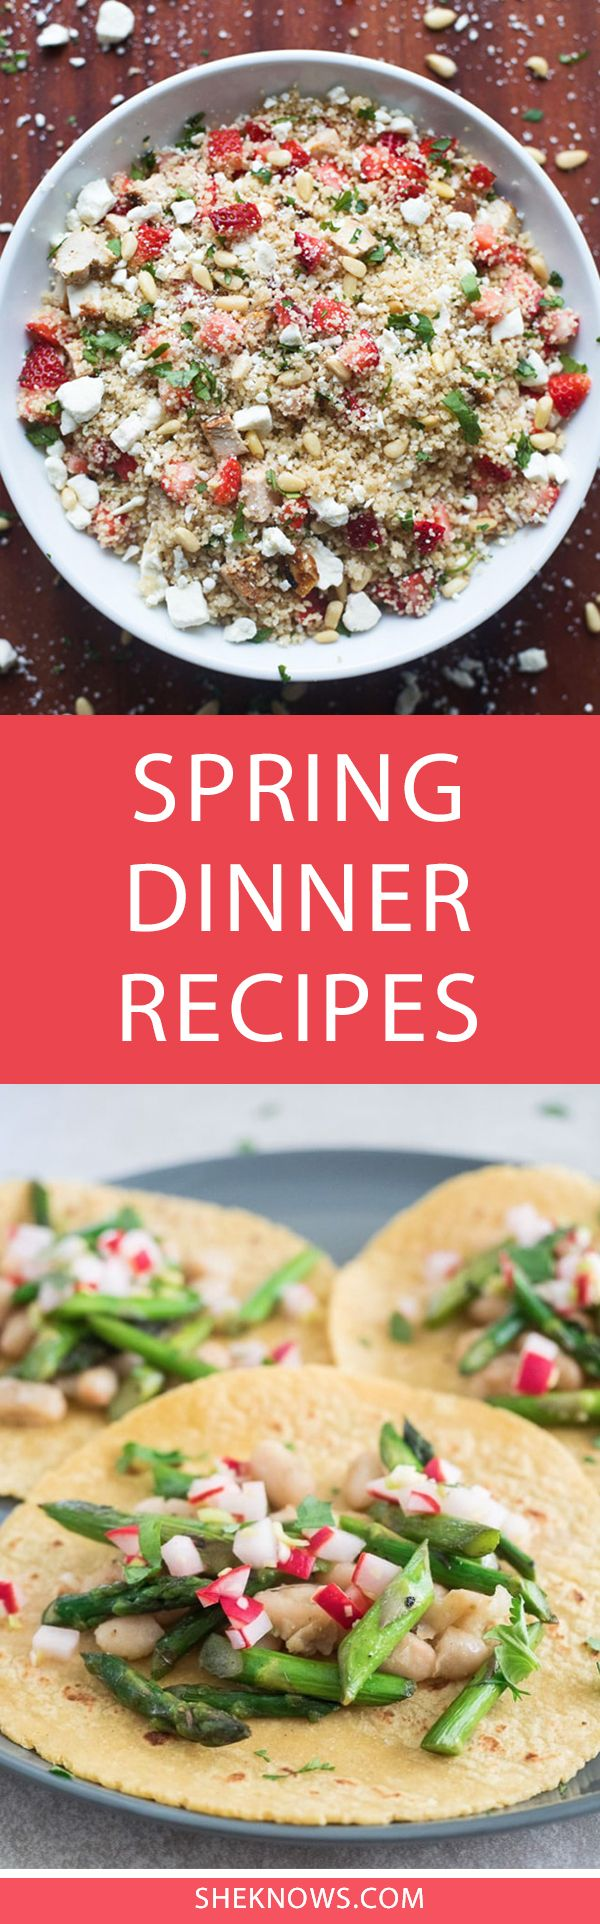 Our round up of healthy dinner ideas for spring! These recipes are perfect for vegans, vegetarians, and meat lovers alike.